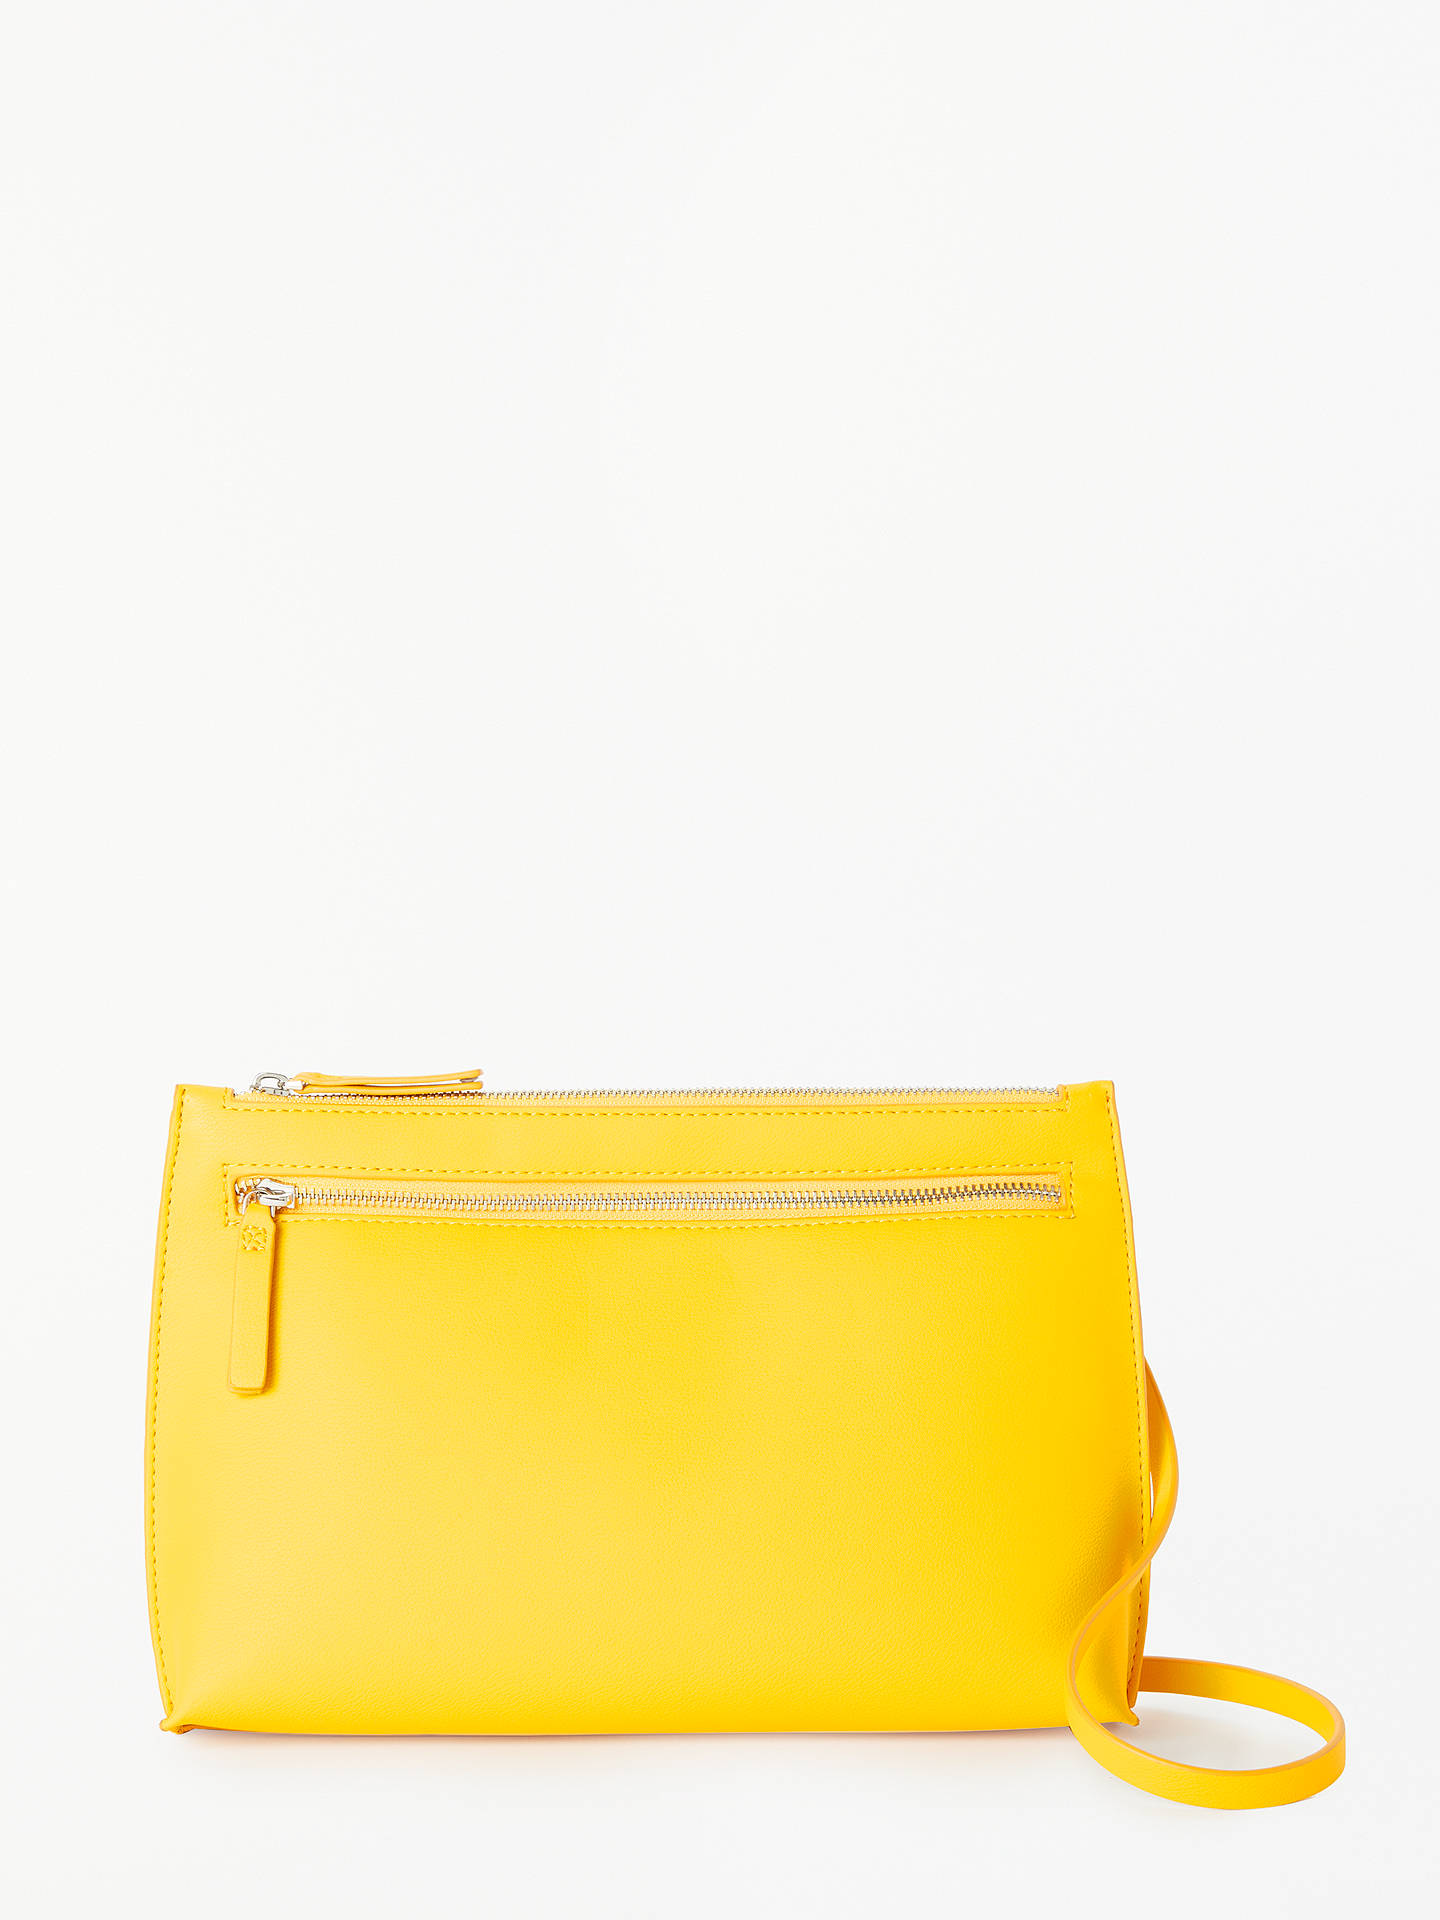 BuyKin Sia Cross Body Clutch Bag, Yellow Online at johnlewis.com